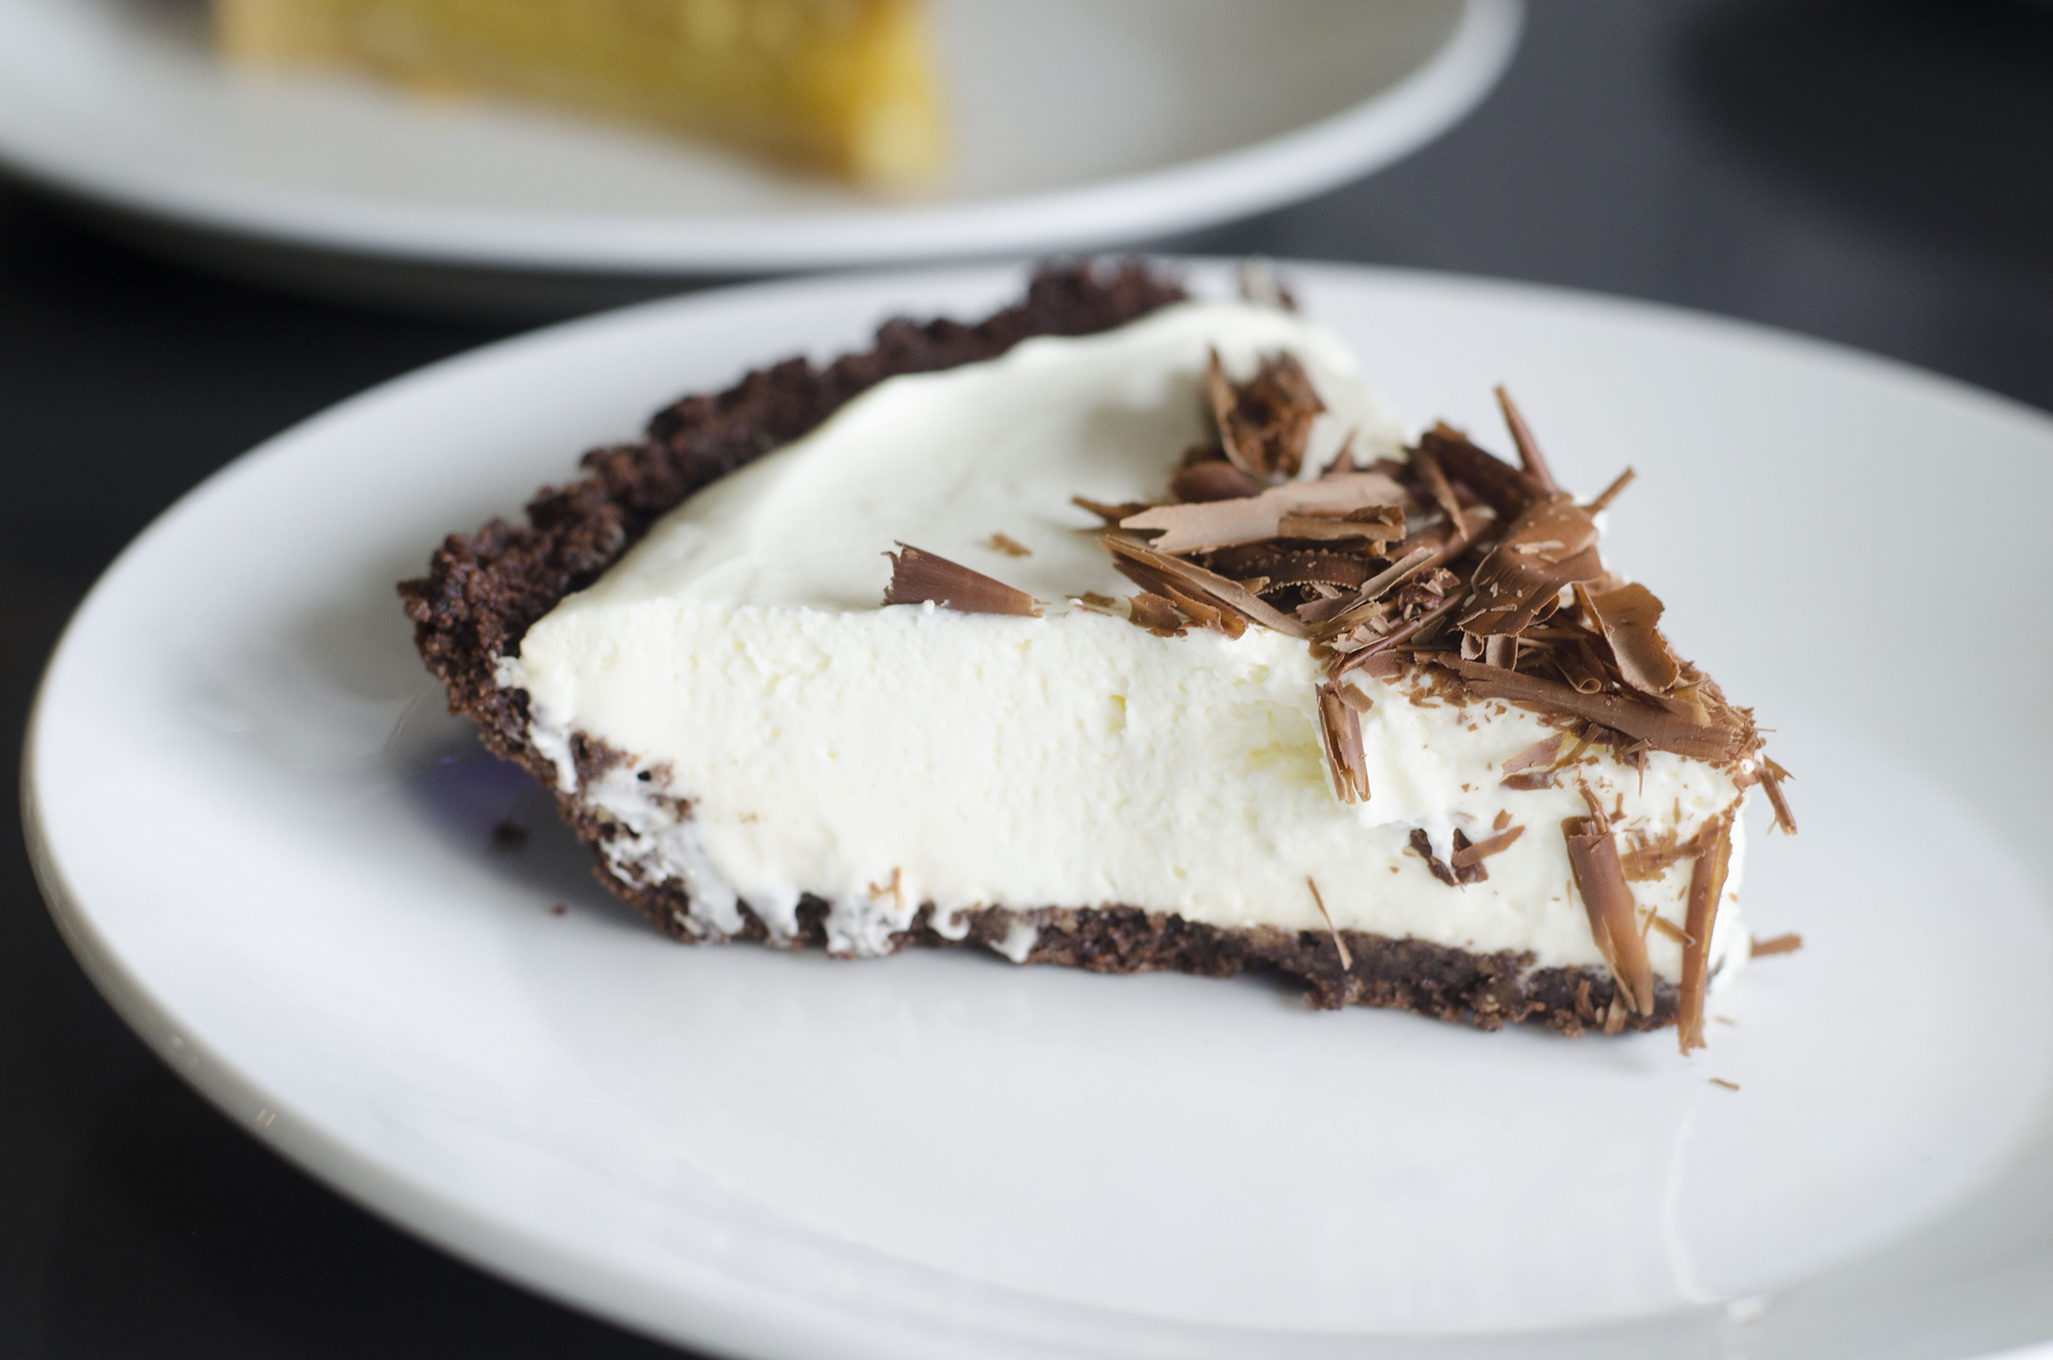 Mint Chocolate pie from Riverside Pie Cafe in Windsor, Ontario.